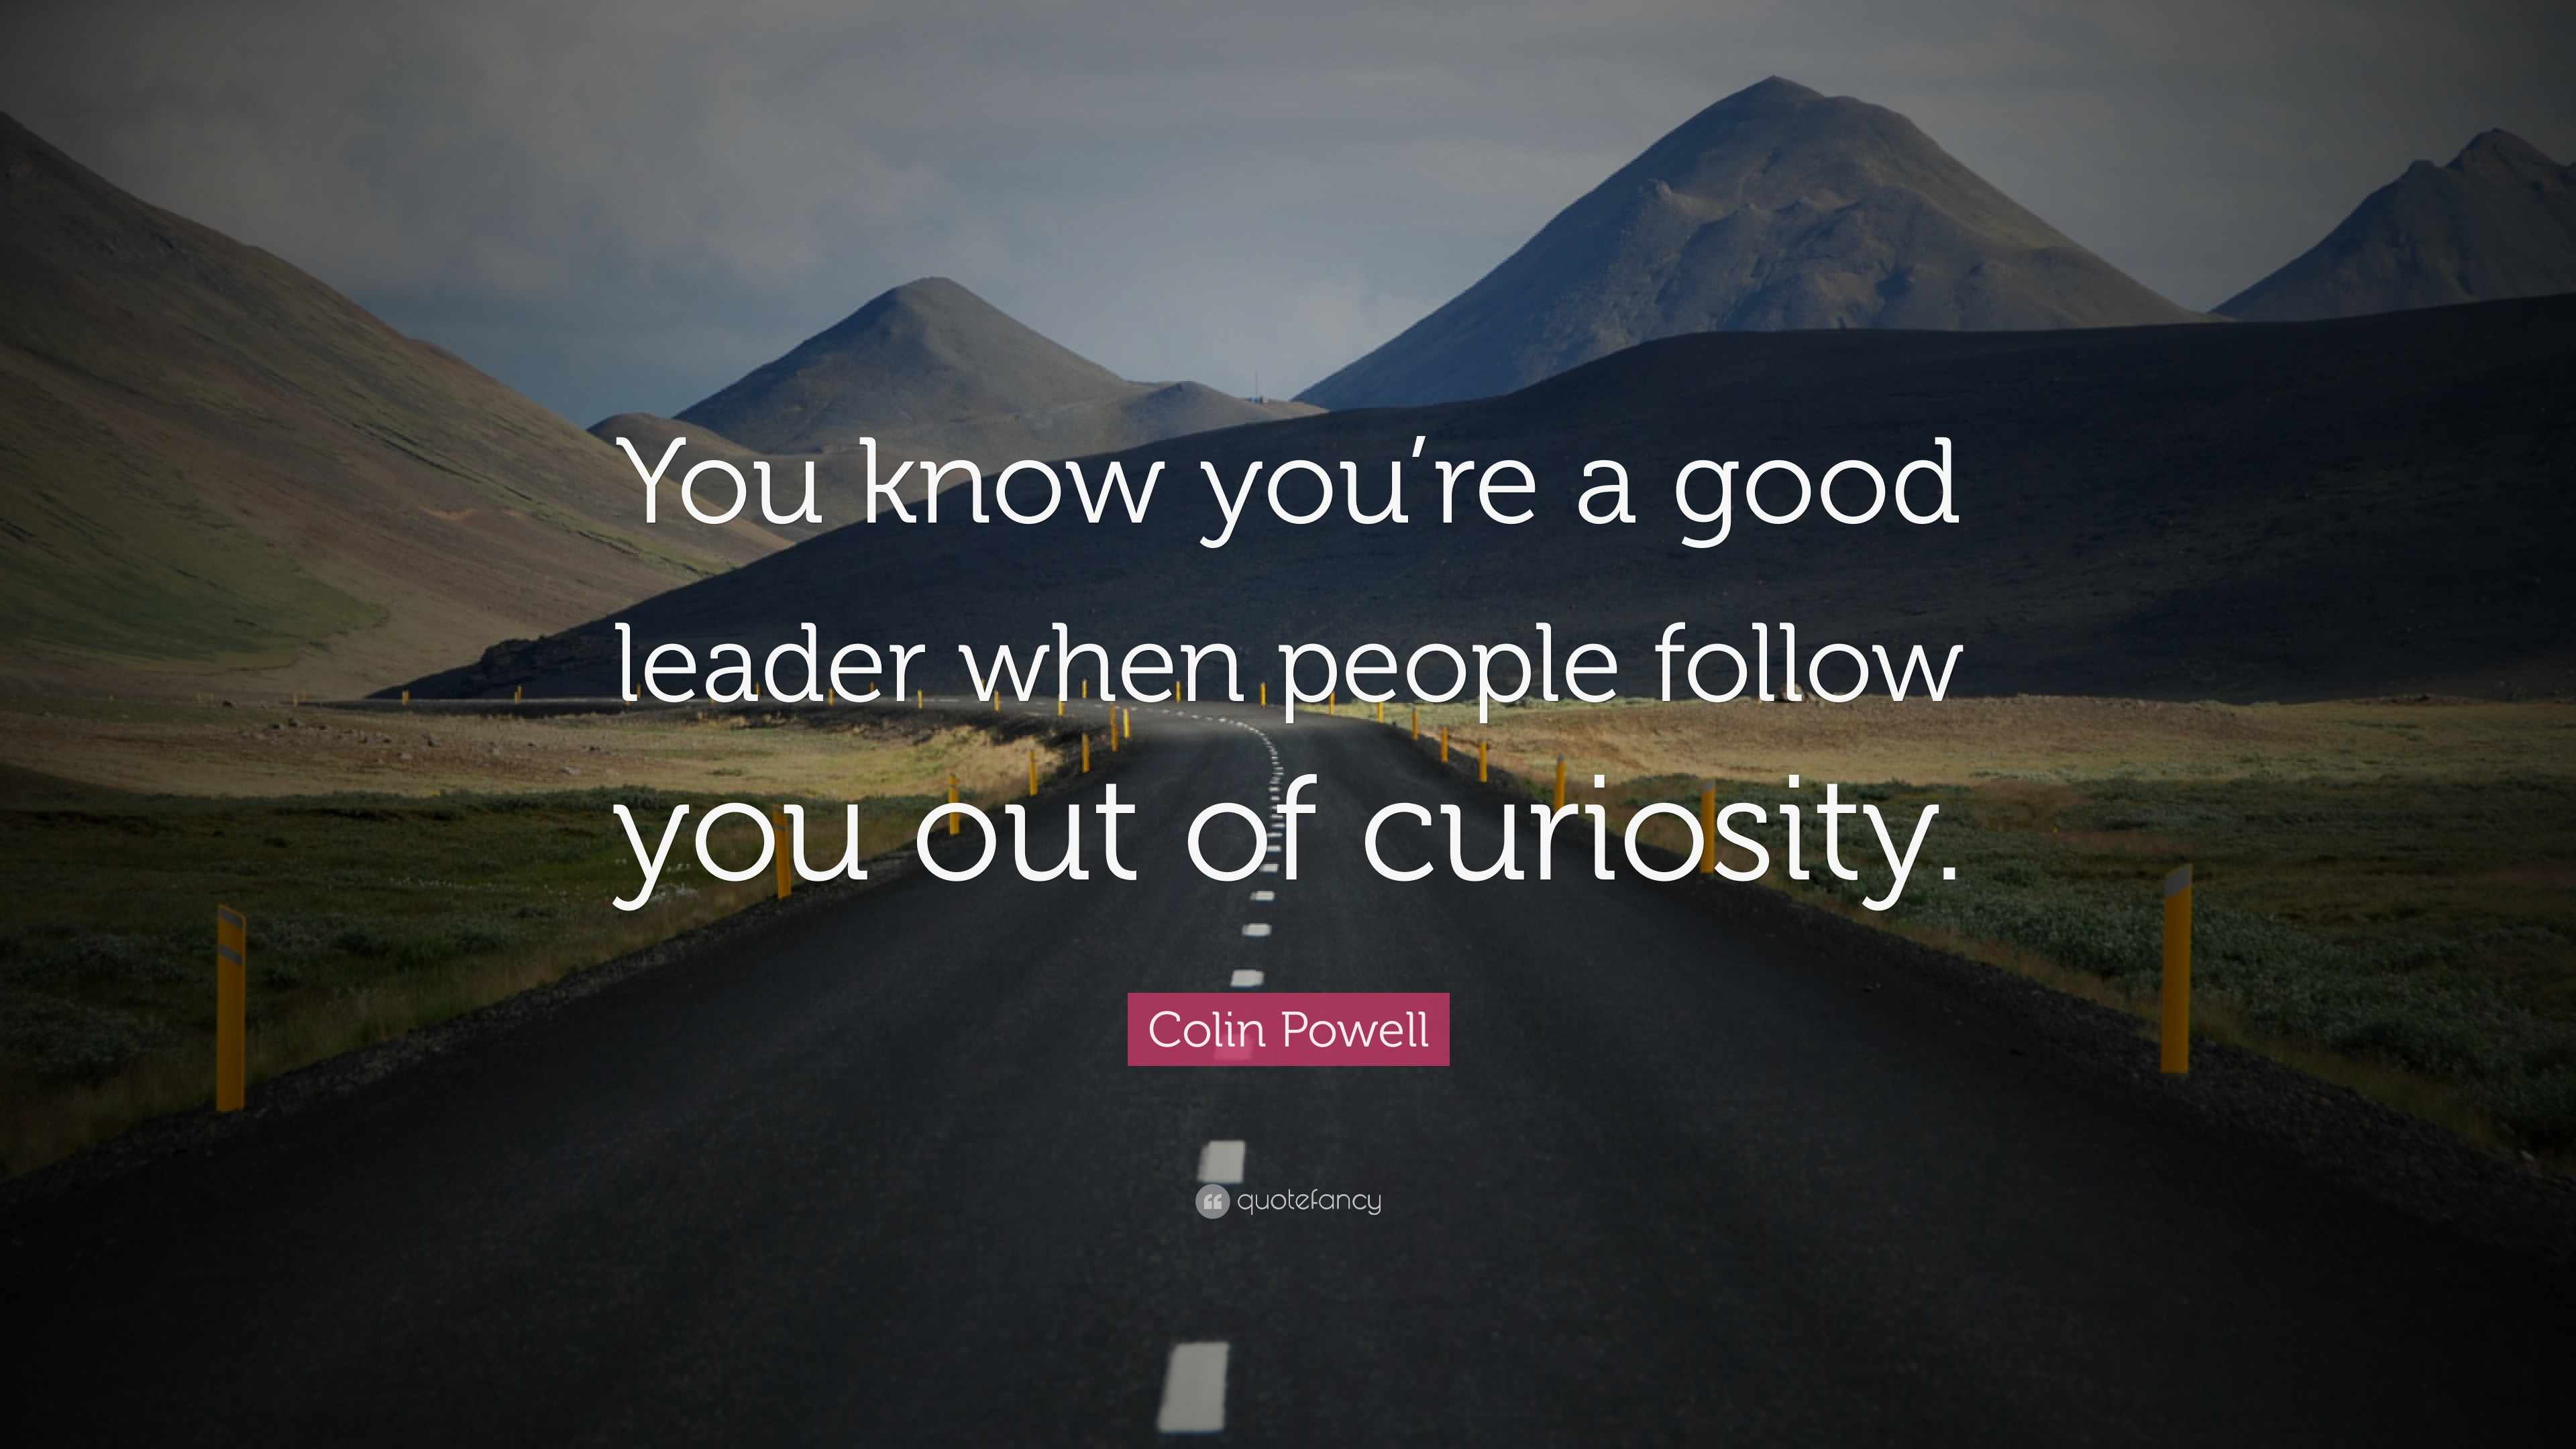 are you a good leader There are certain characteristics found in some people that seem to naturally put them in a position where they're looked up to as a leader whether in fact a person is born a leader or develops skills and abilities to become a leader is open for debate there are some clear characteristics that are found in good leaders.